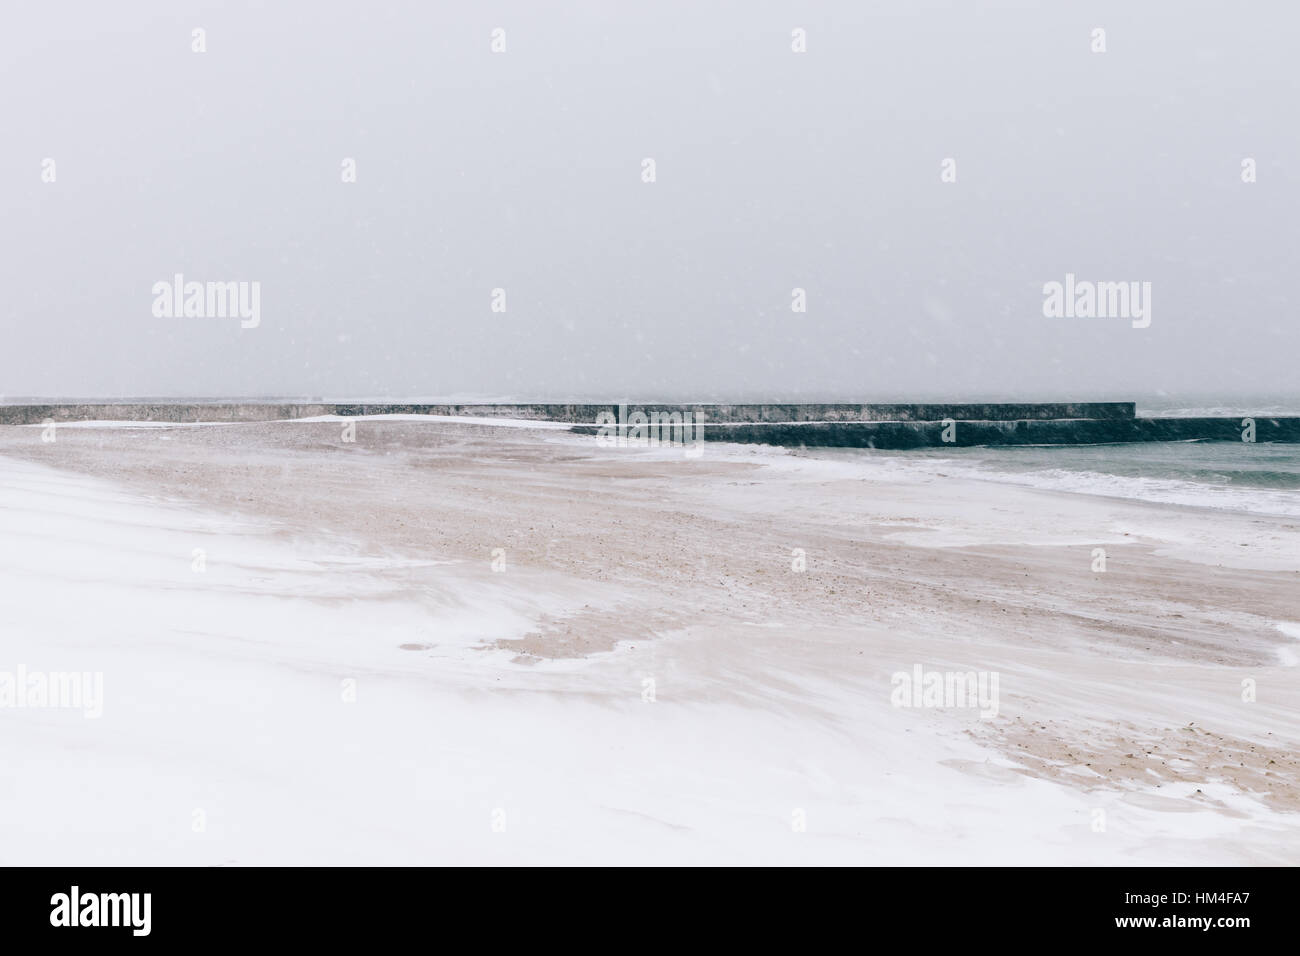 Beach during a blizzard and snowfall, minimalist landscape, soft focus - Stock Image